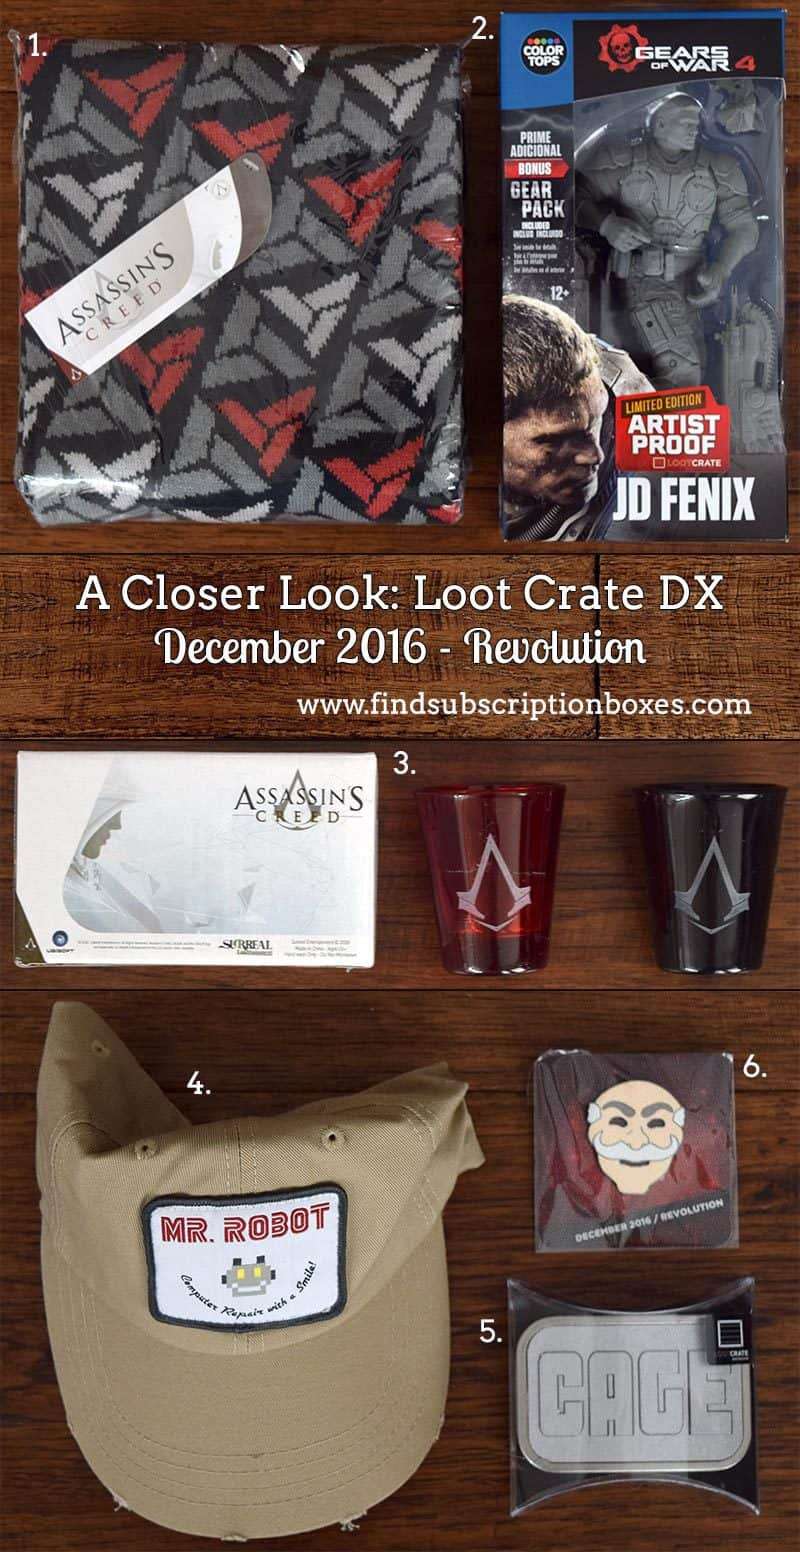 Loot Crate DX December 2016 Review - Revolution - Inside the Box